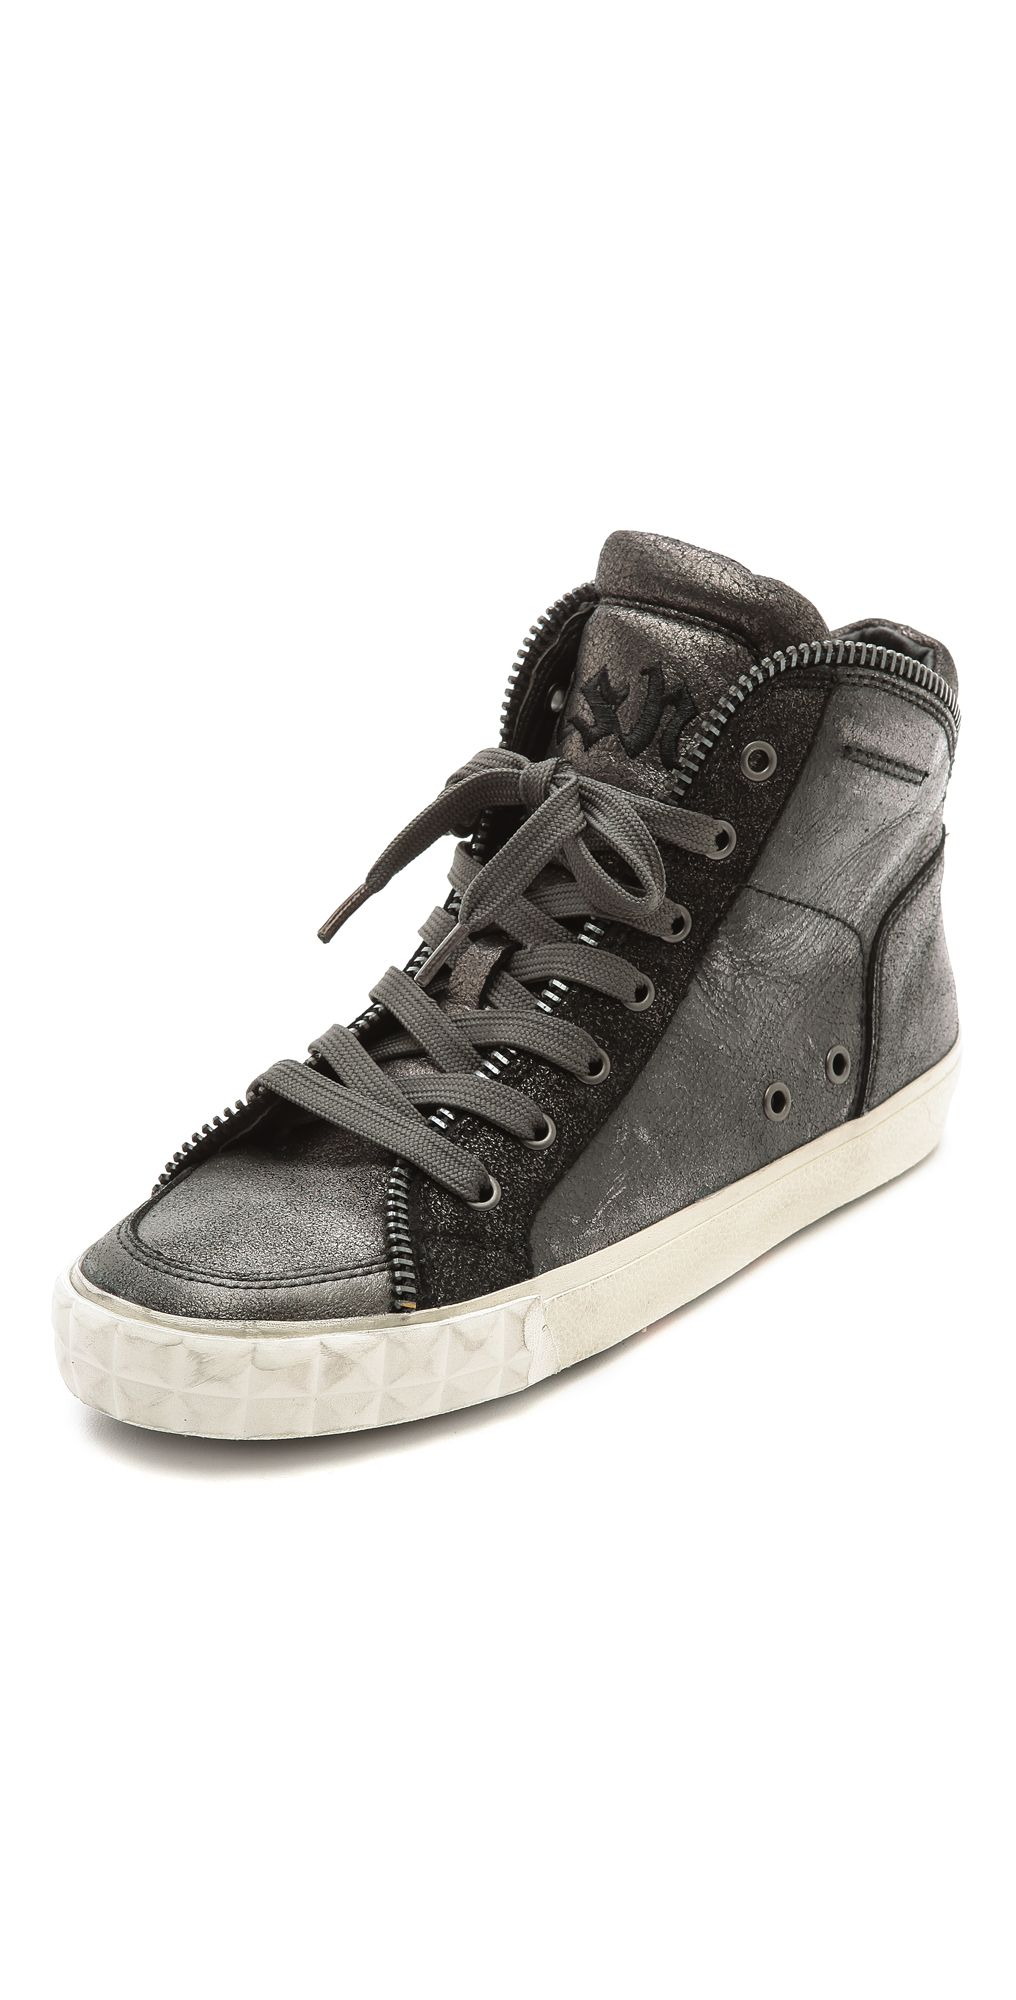 FOOTWEAR - High-tops & sneakers SHAKE fH9FNp